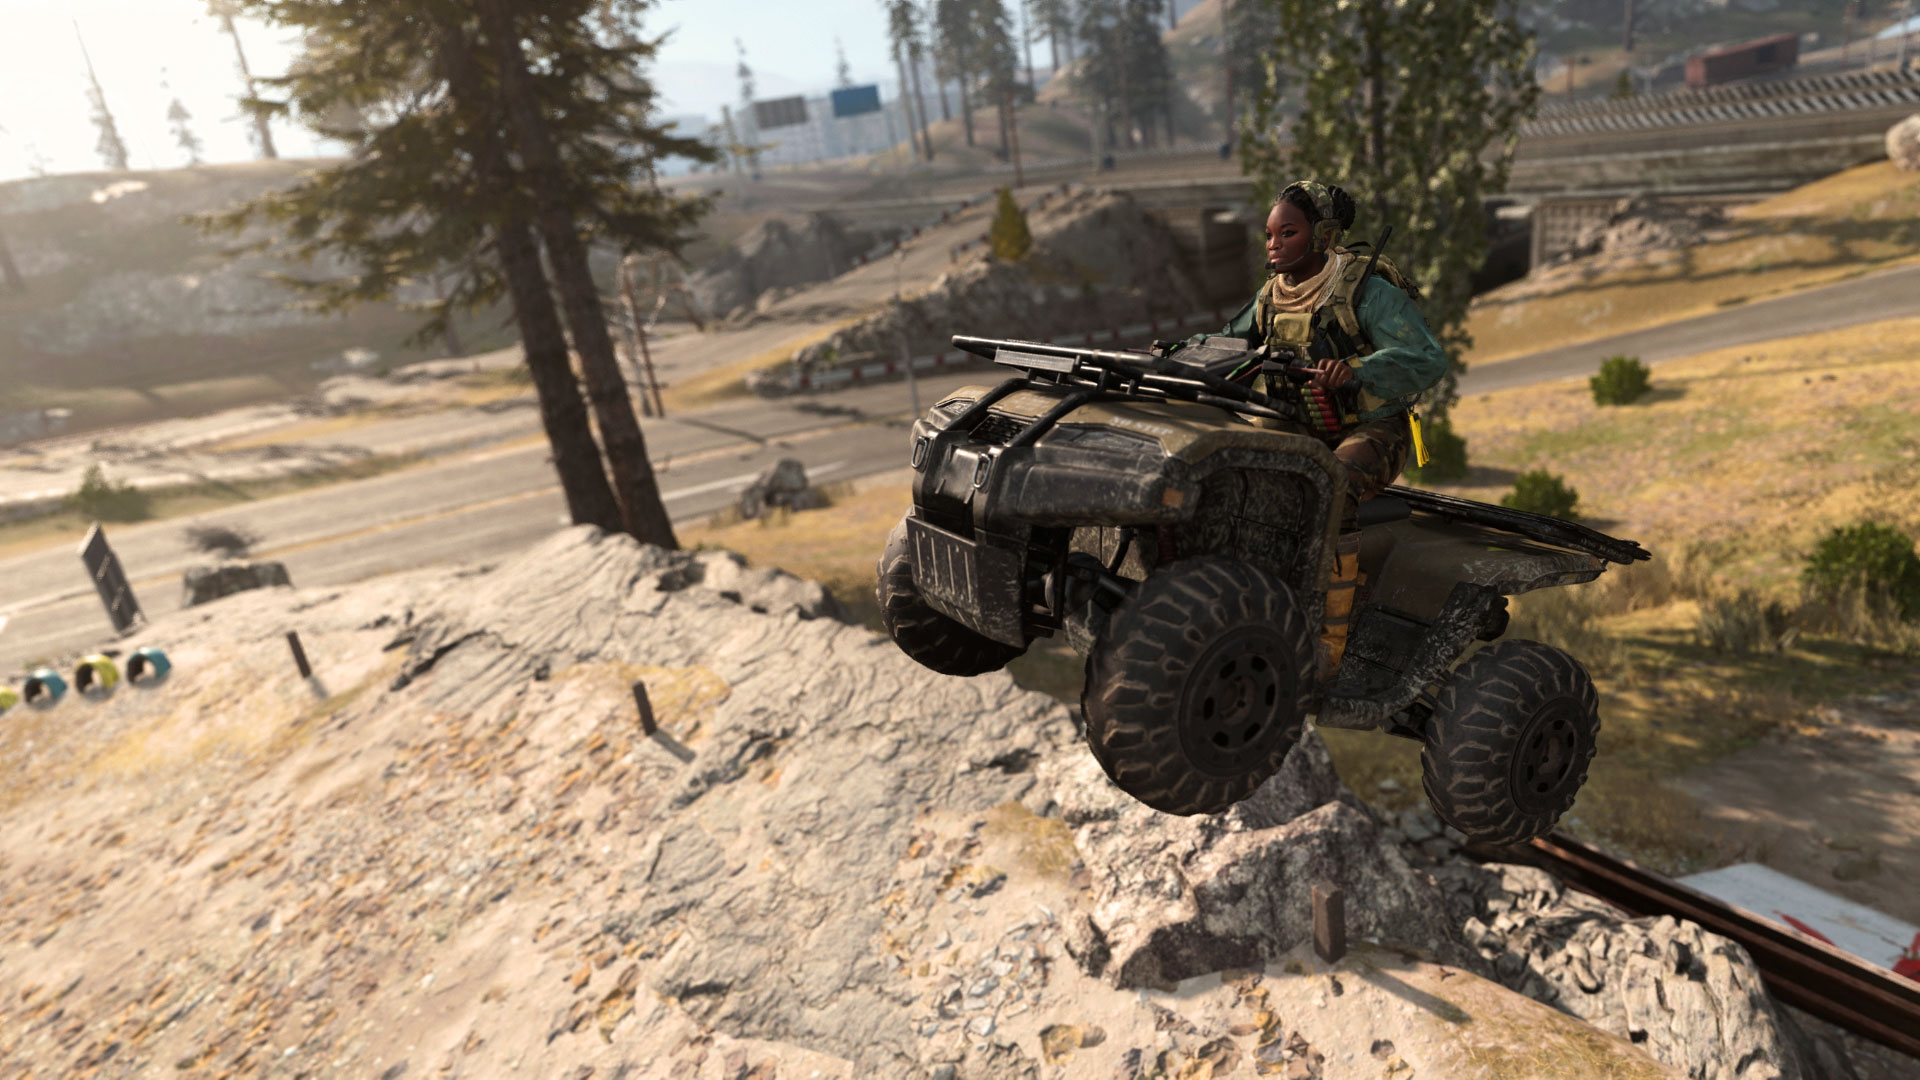 In-game footage from Warzone of a character riding an ATV